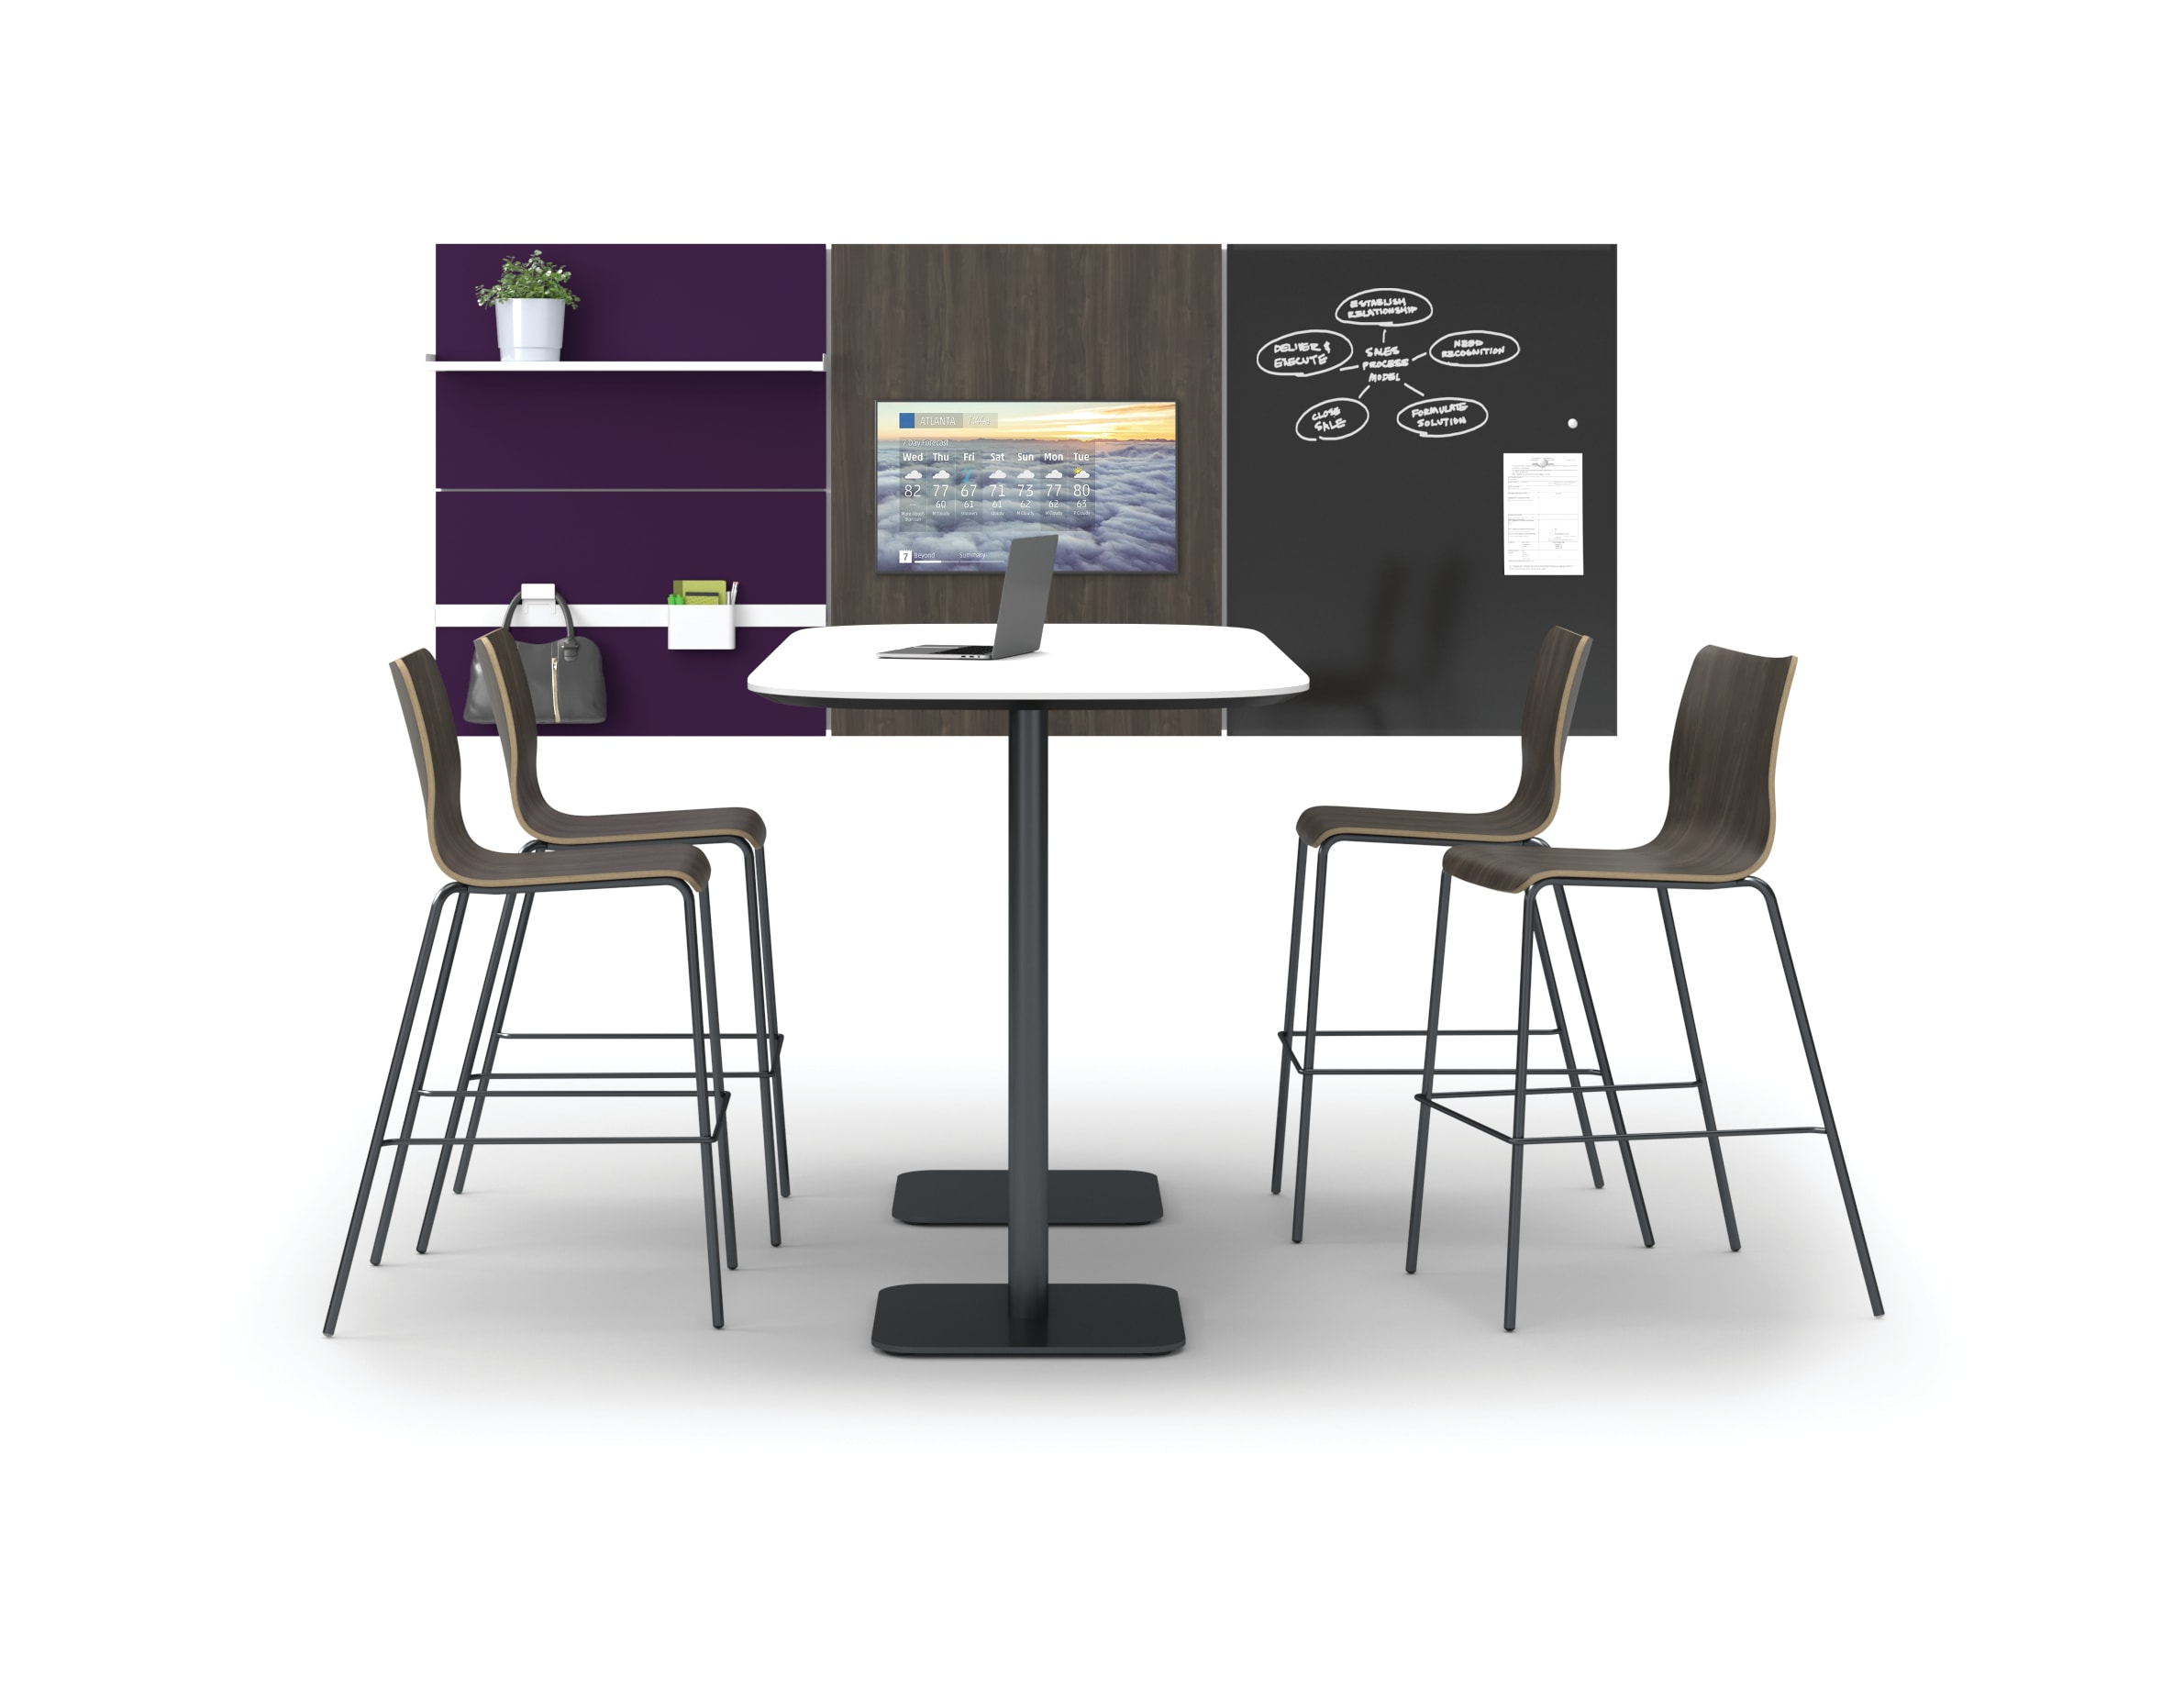 Birk table with Ruck chairs in open collaborative setting with Workwall